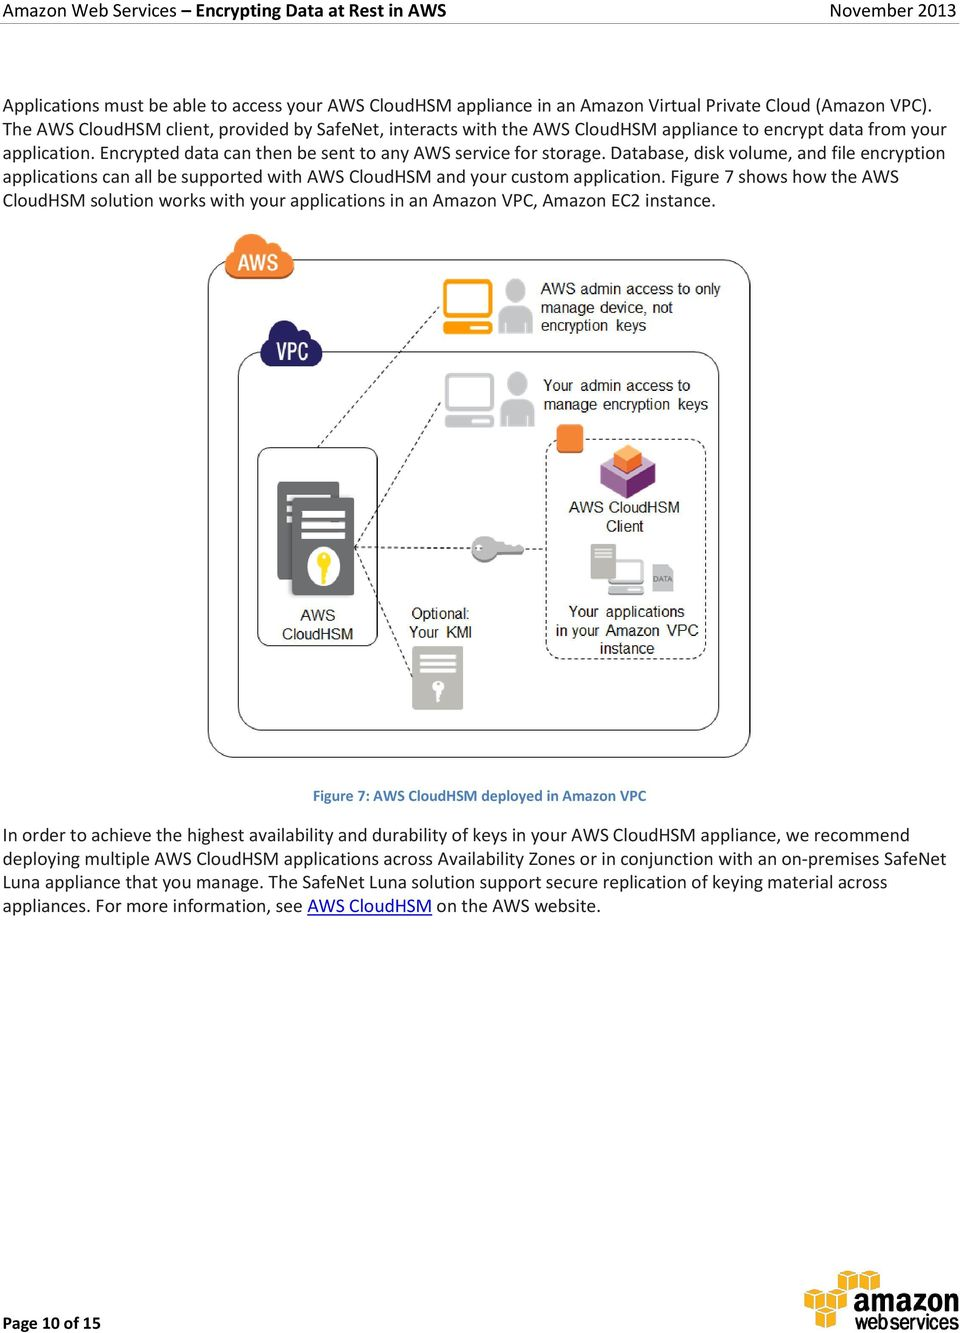 Database, disk volume, and file encryption applications can all be supported with AWS CloudHSM and your custom application.